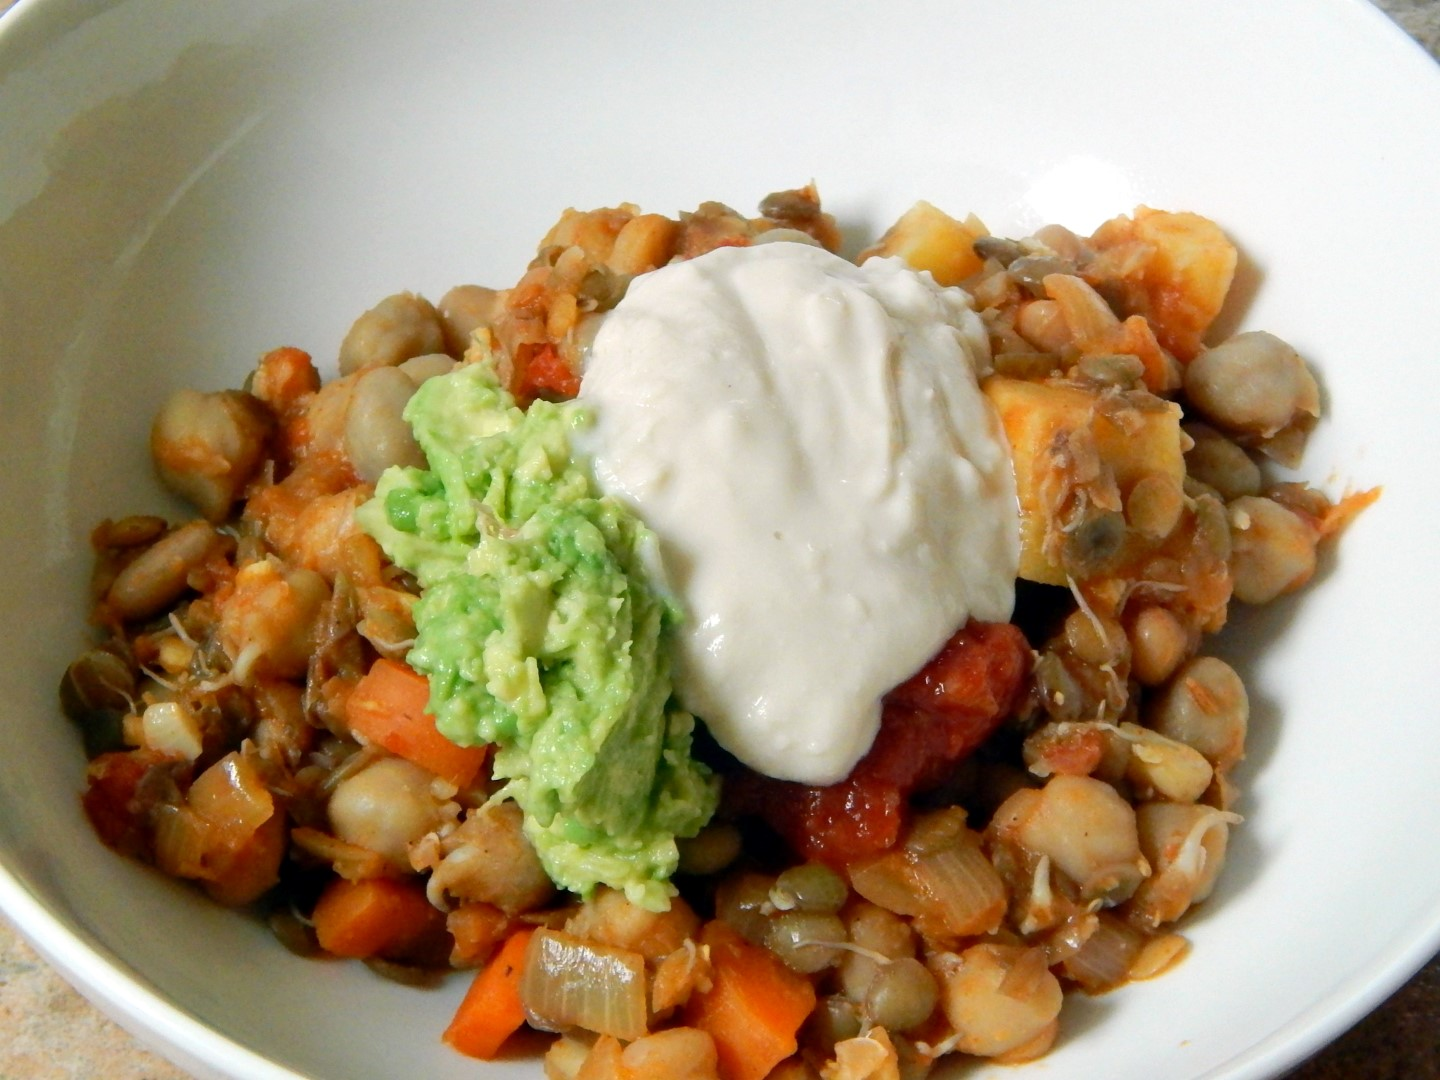 Vegan sour cream with a mexi bowl.